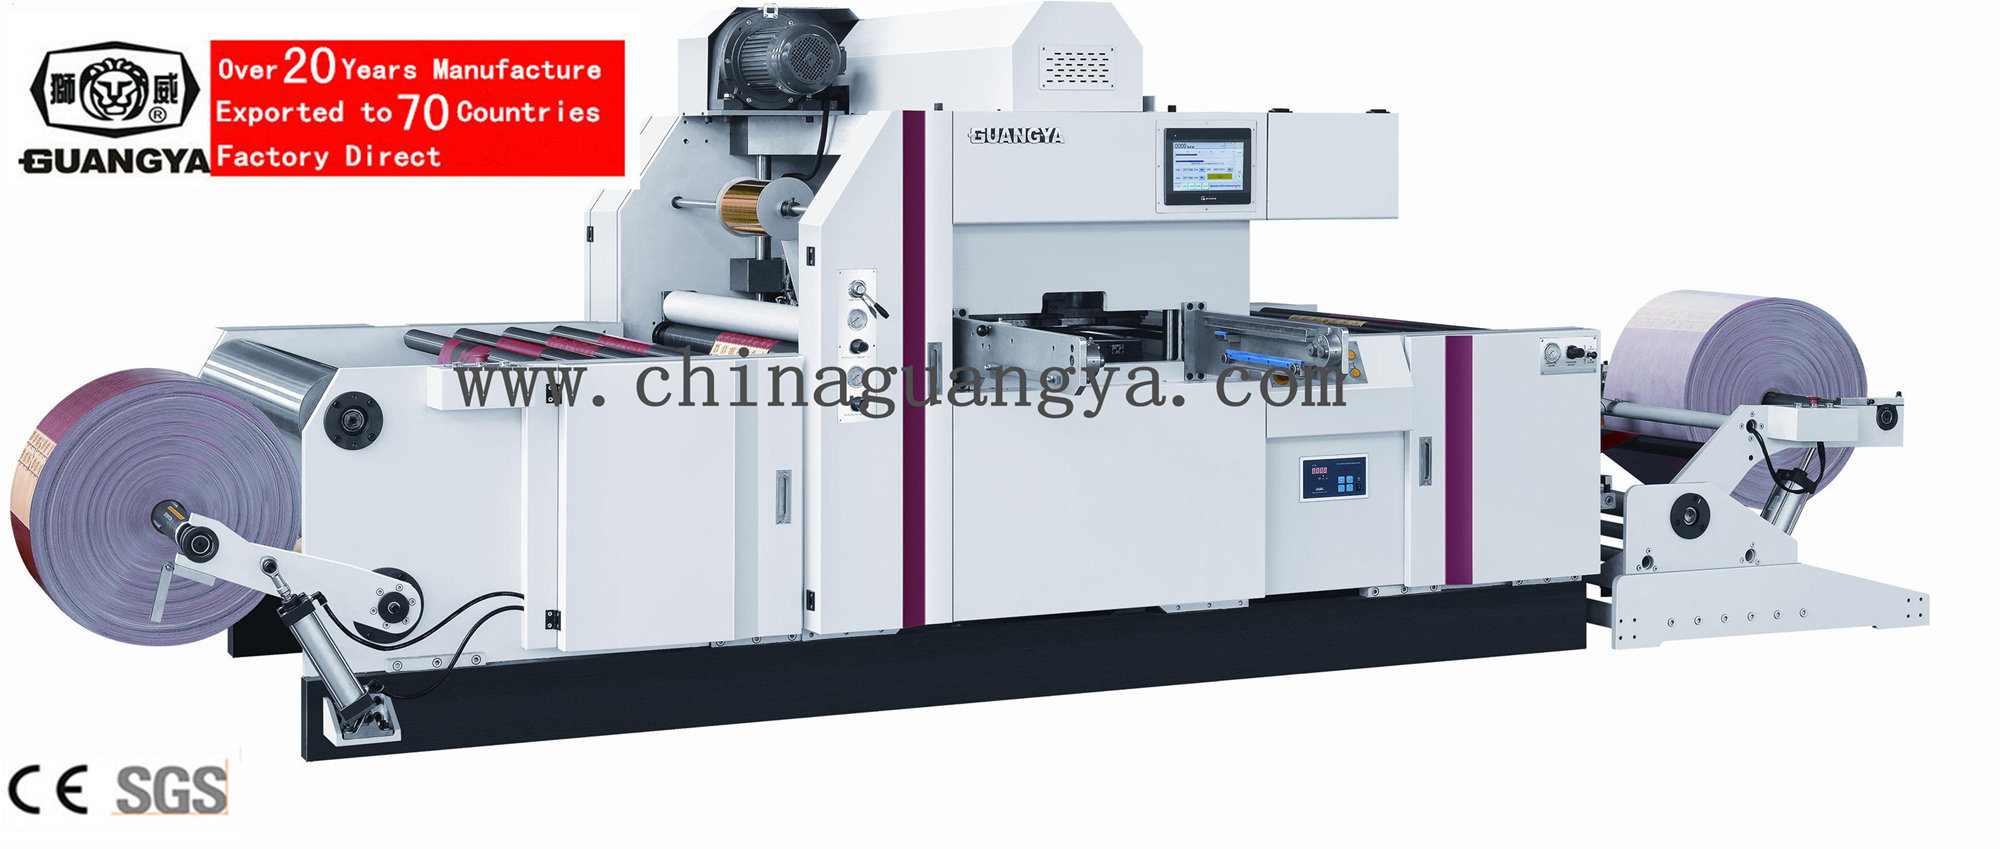 Automatic Hot Foil Stamping Machine for Non-Woven Bags (TYM1300)